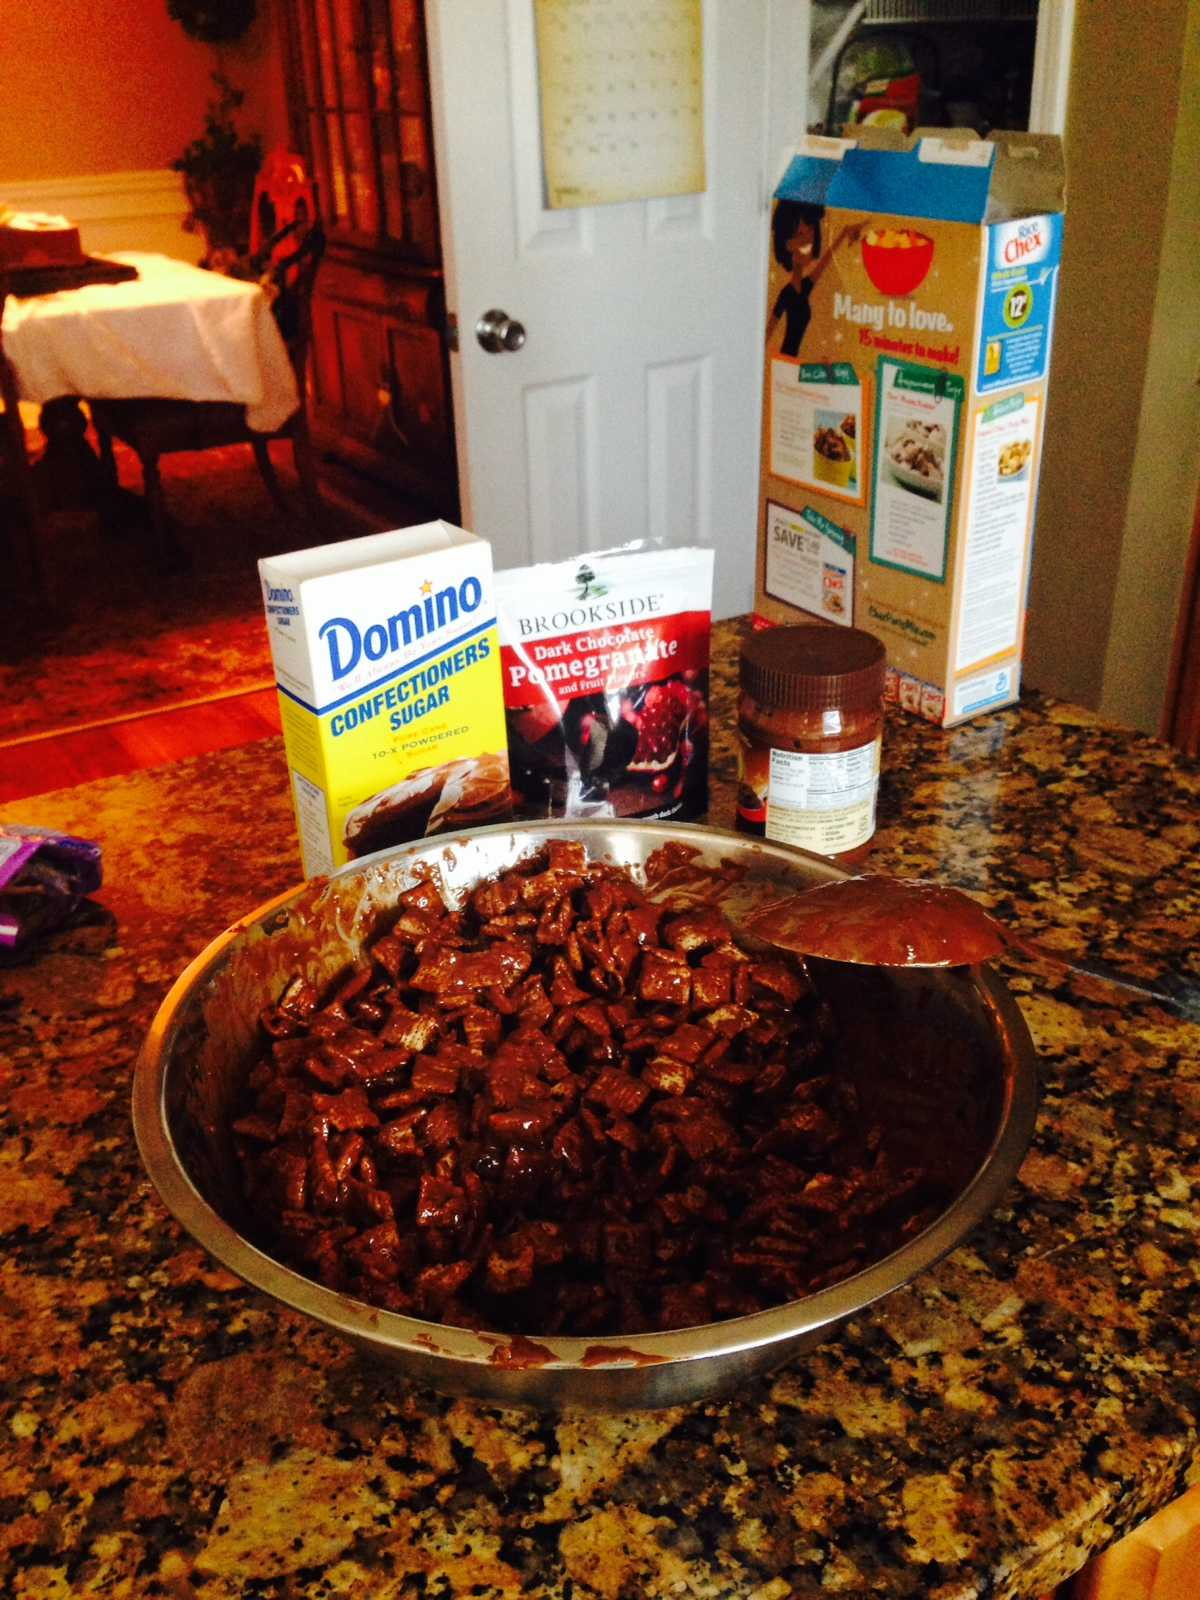 Once the chocolate has been melted, we poured it over the cereal and stirred. Picture taken by: Beattie Hoyle